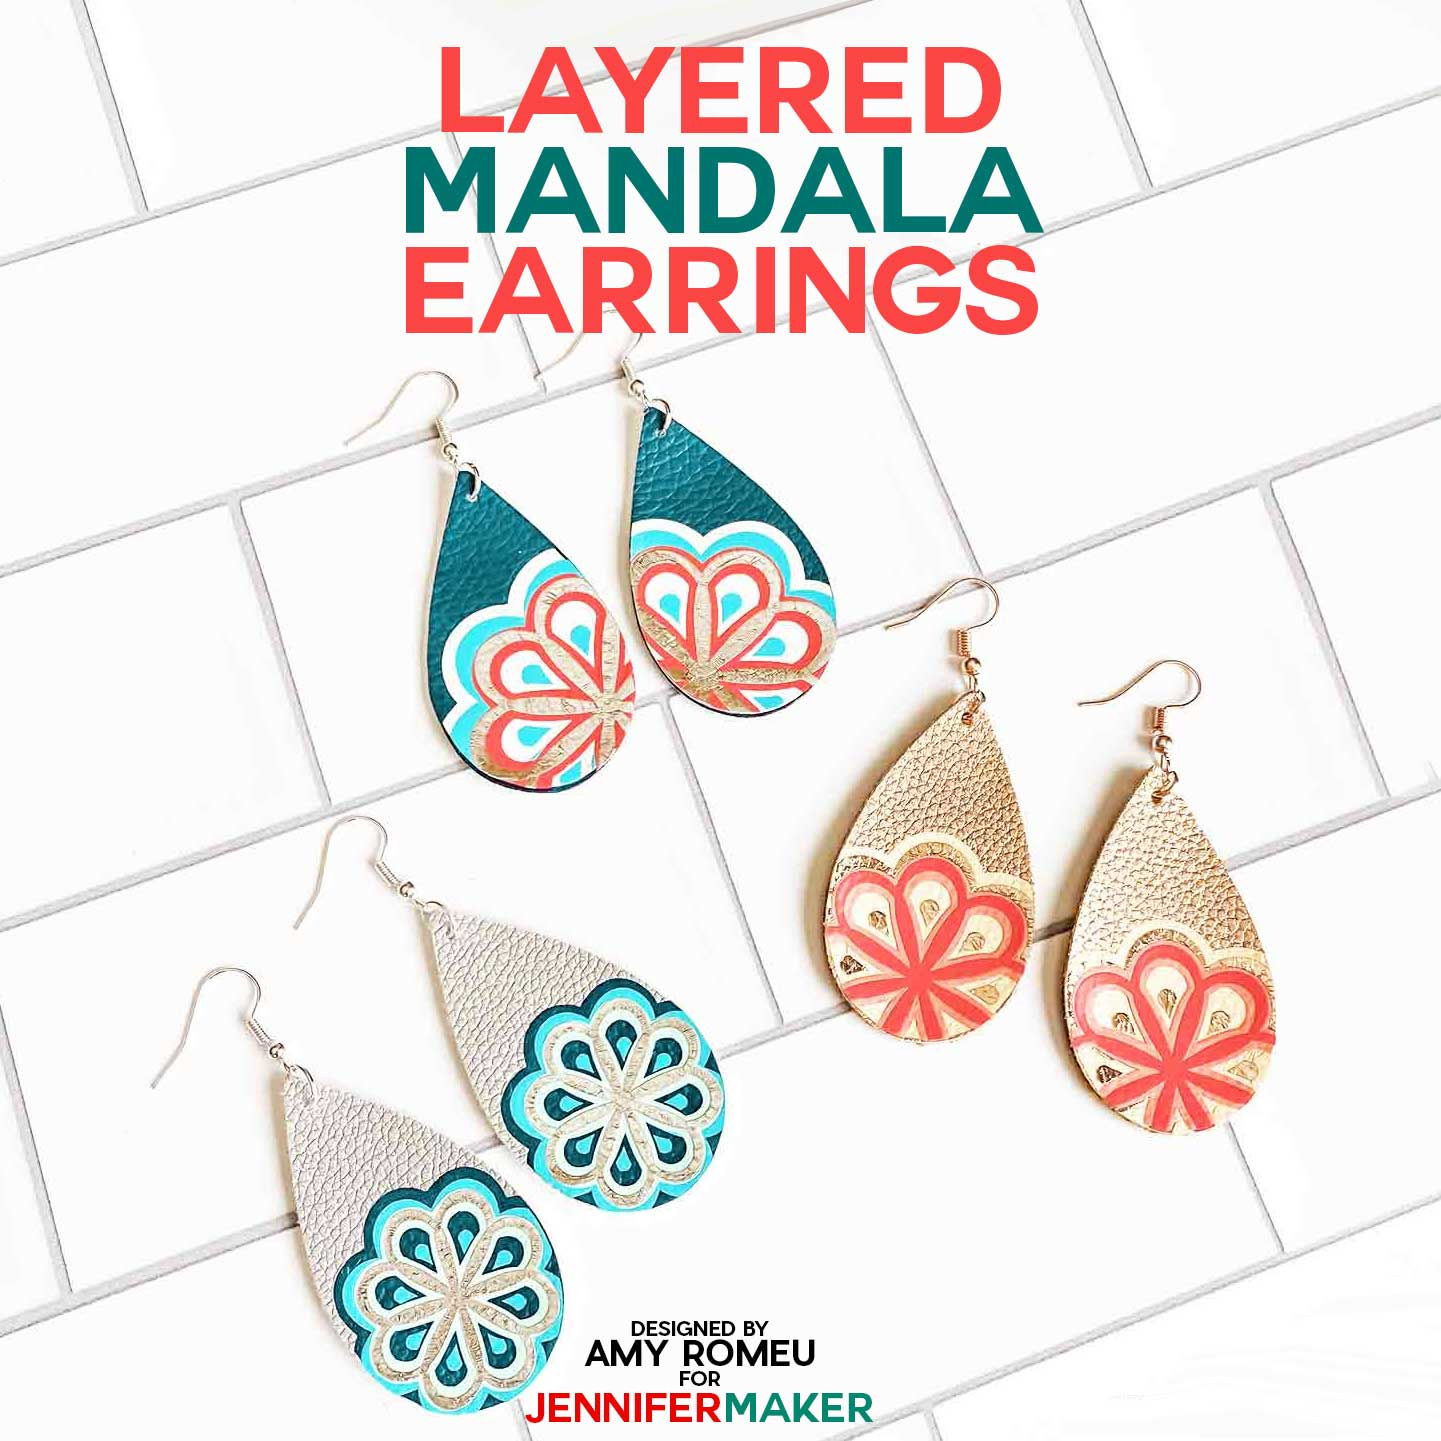 Cricut Earring Designs with Layered Mandala Iron-on Vinyl over Faux Leather Teardrops